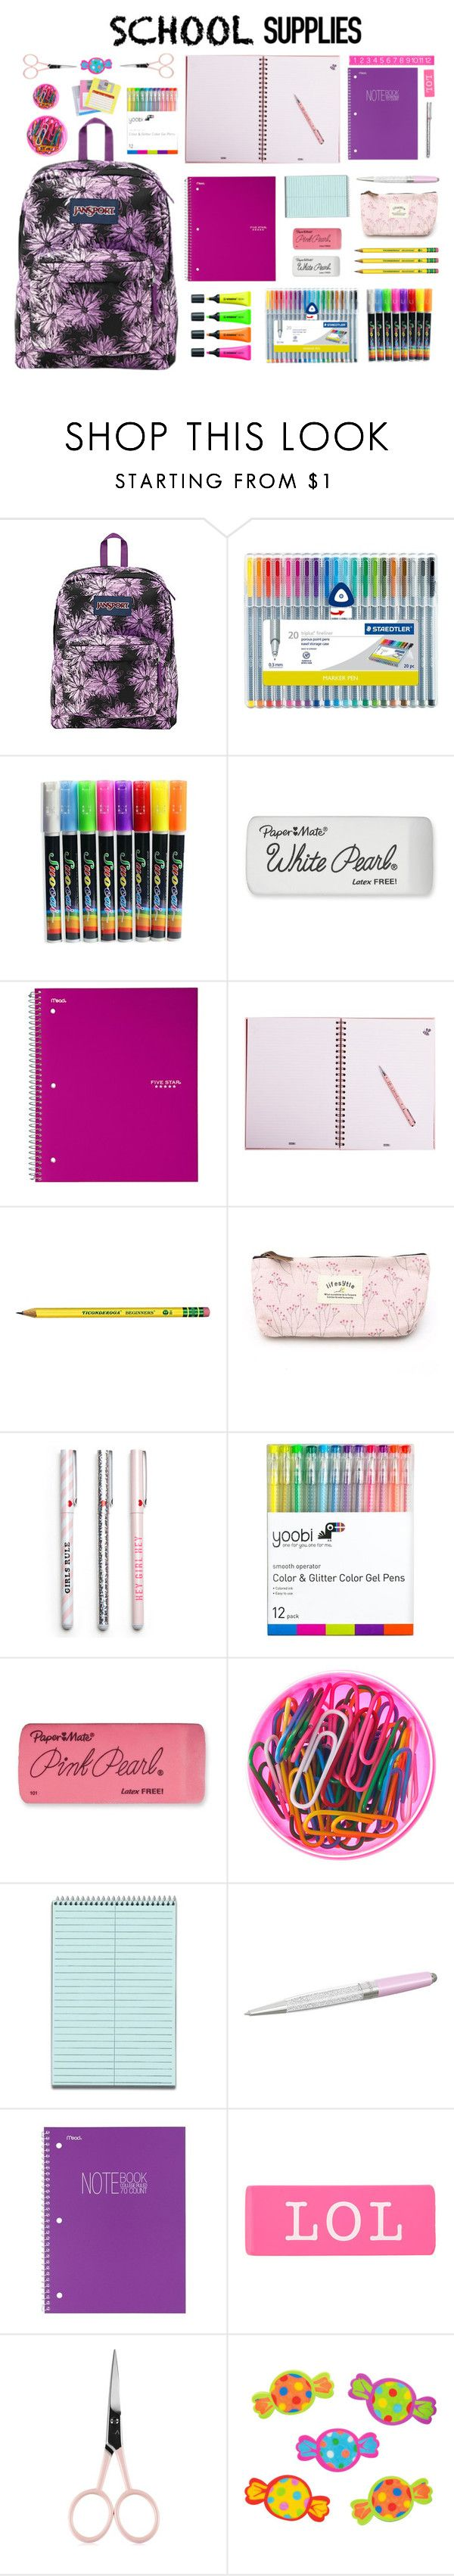 """""""#58 Back To School Supplies (4)"""" by konstantina00085 ❤ liked on Polyvore featuring interior, interiors, interior design, home, home decor, interior decorating, JanSport, Stabilo, Paper Mate and Yoobi"""